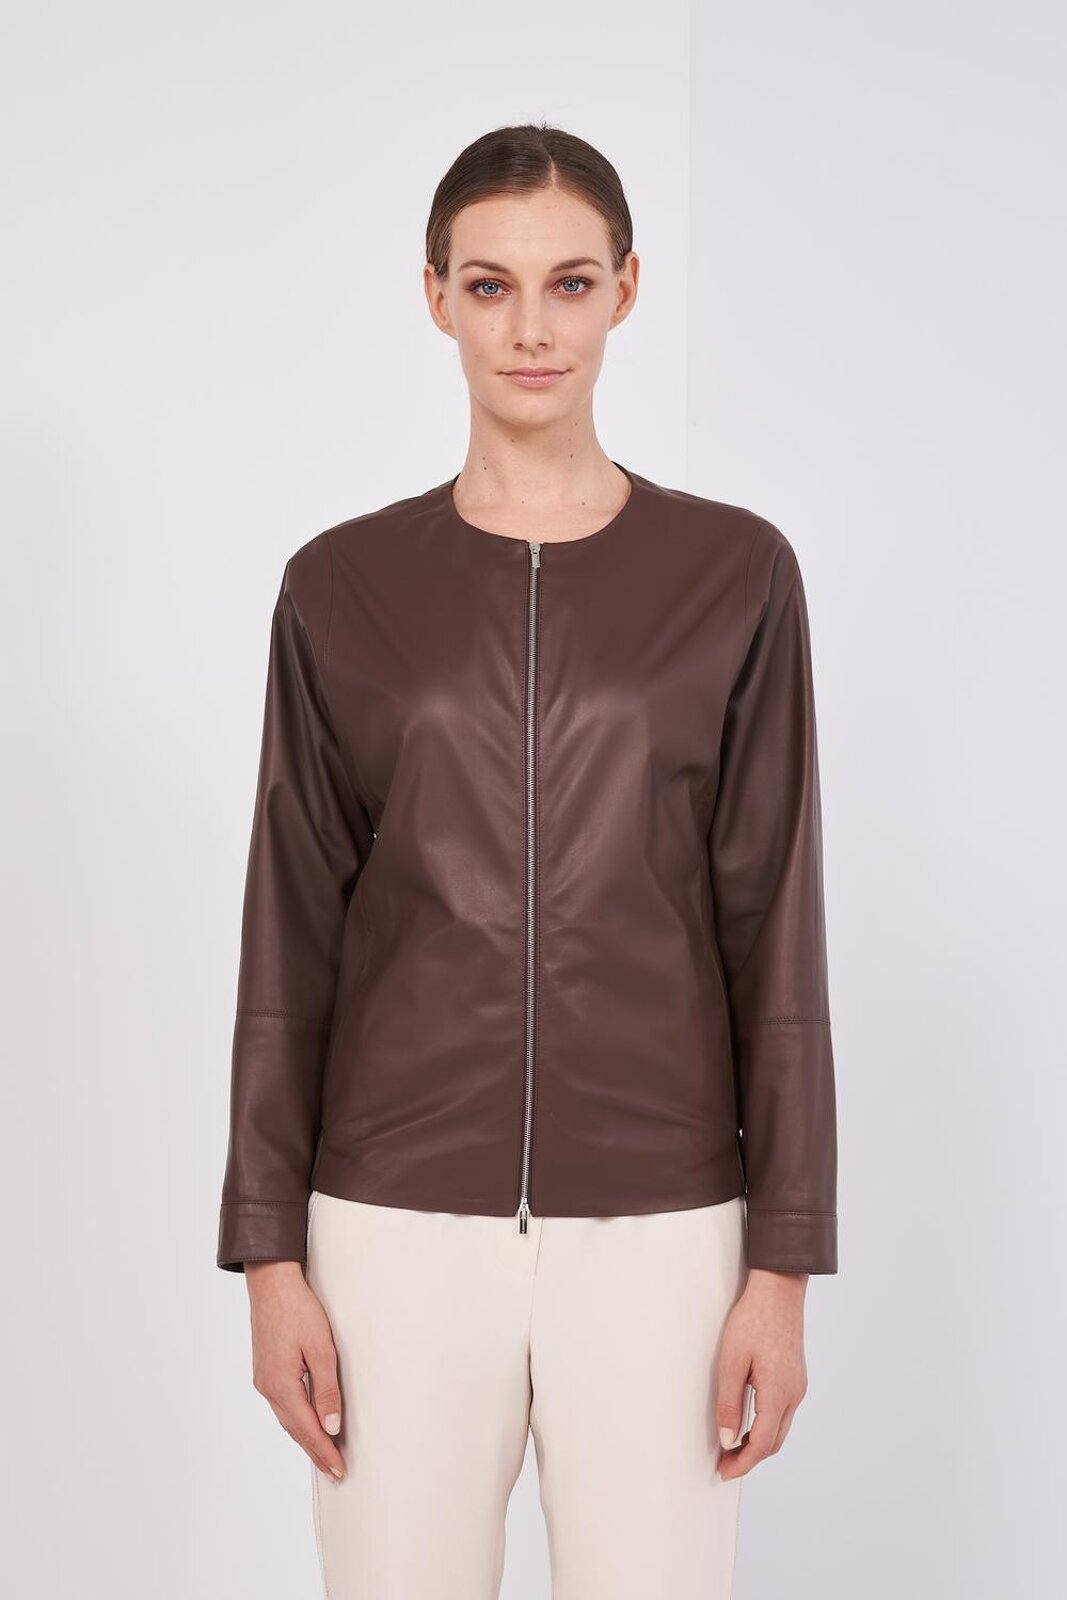 100% Genuine Soft Leather Long Sleeve Jacket. Round Neckline, Two Side Pockets, Elastic Back, Front Zip Closure. Slightly oversized fit. - Peserico